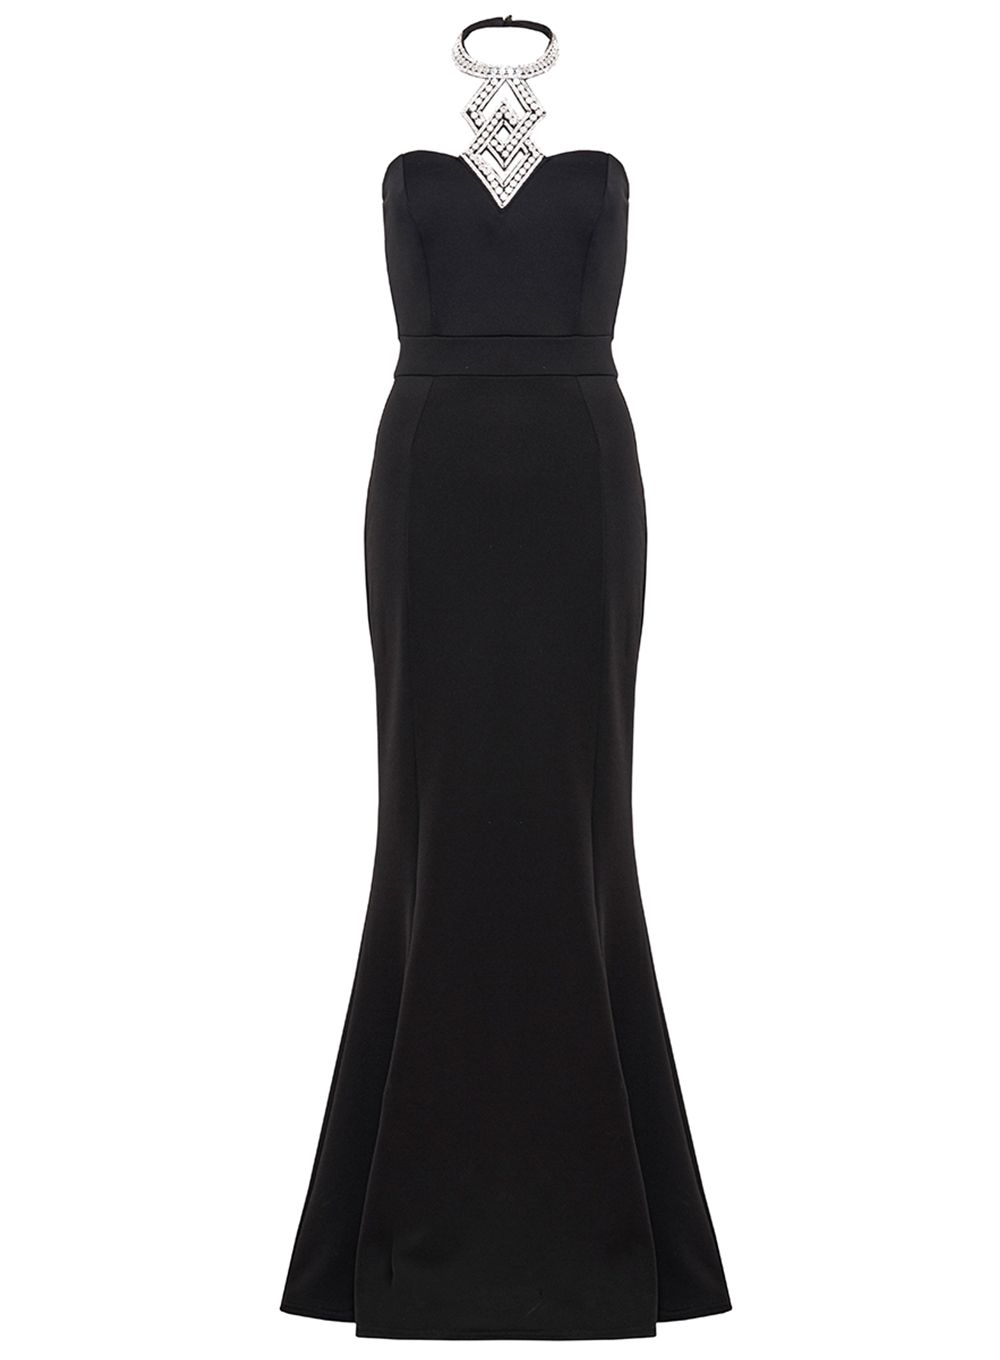 Quiz Black Diamante Fishtail Maxi Dress, Black